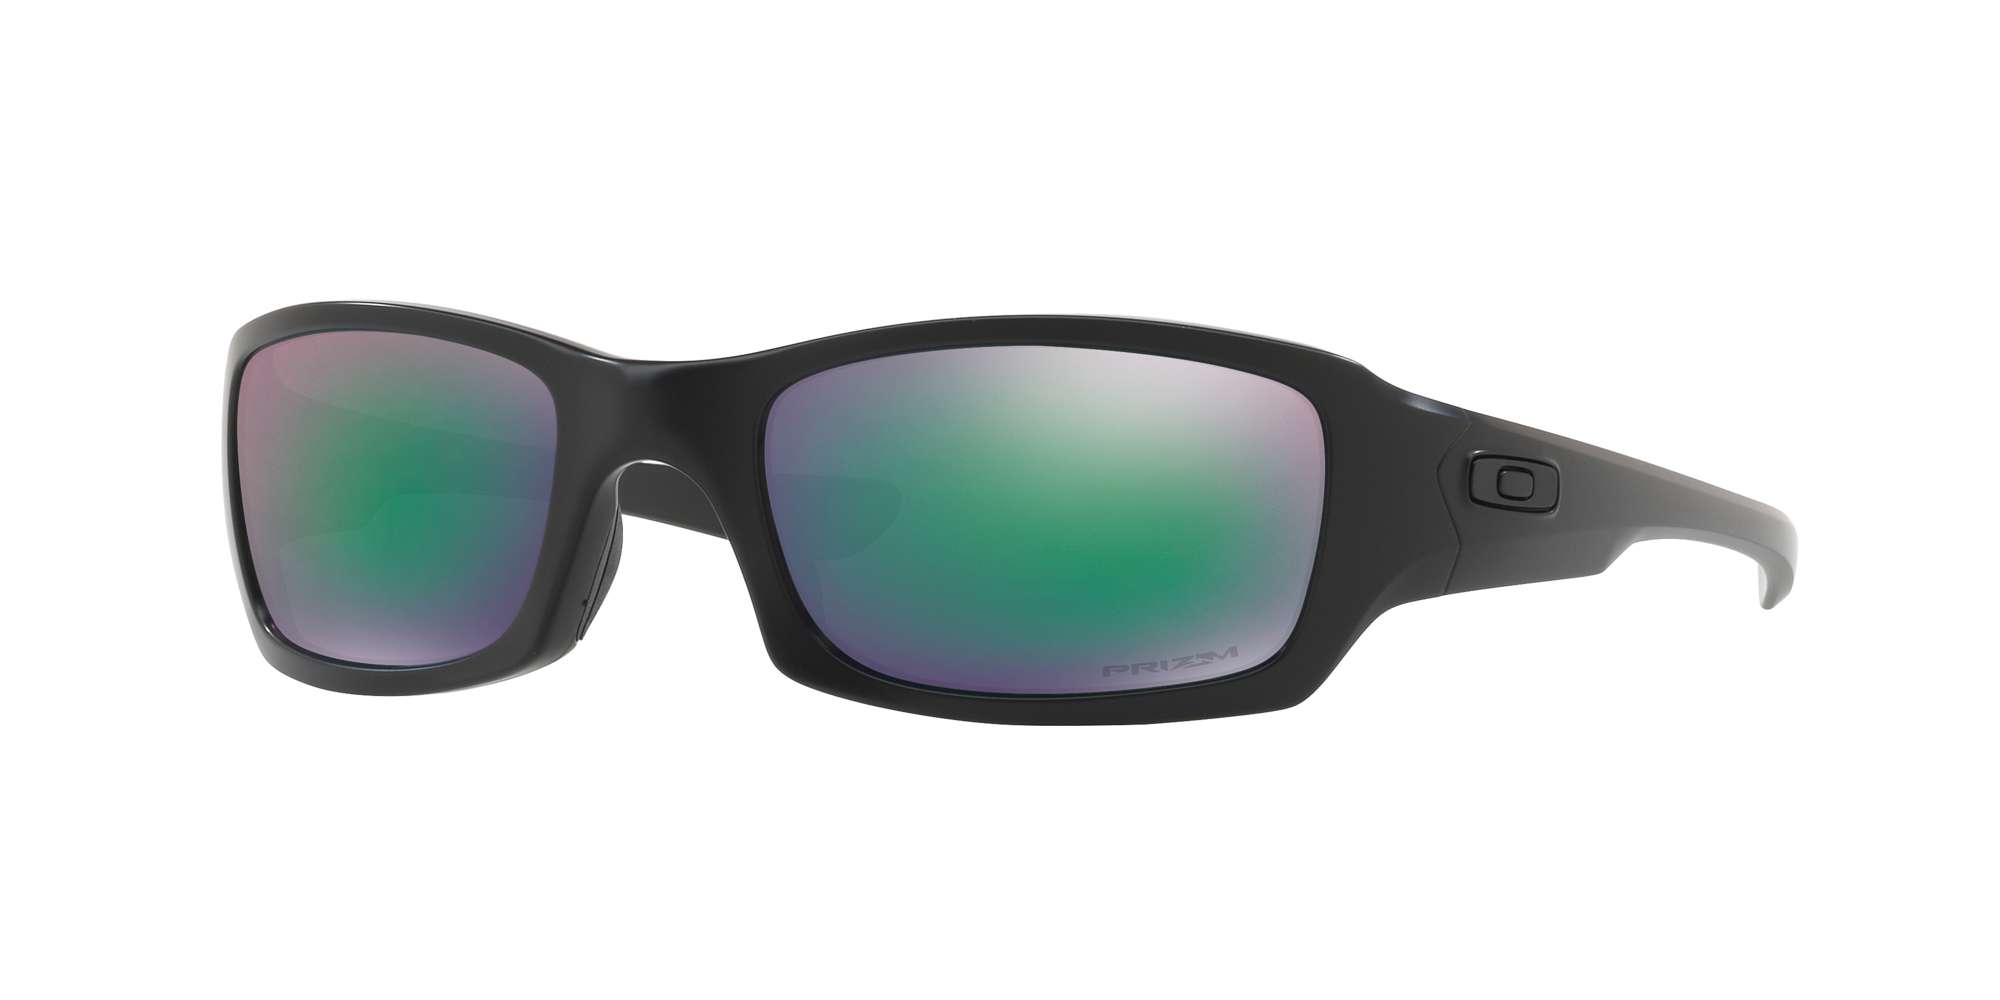 MATTE BLACK / Prizm Maritime Polarized lenses